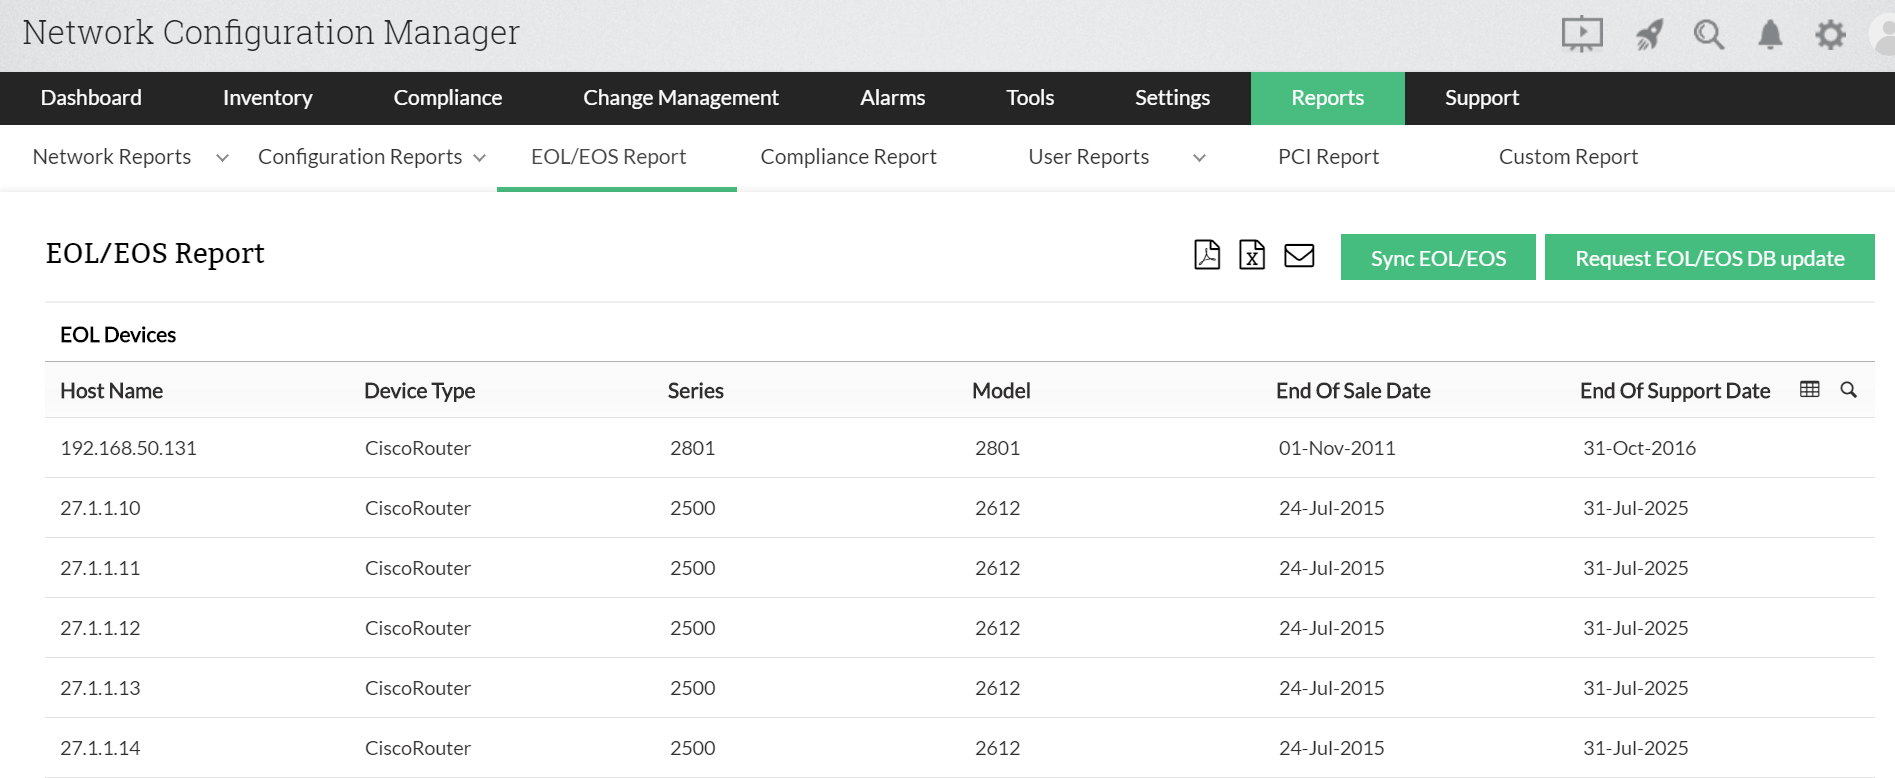 EOL/EOS reports with Network Configuration Manager